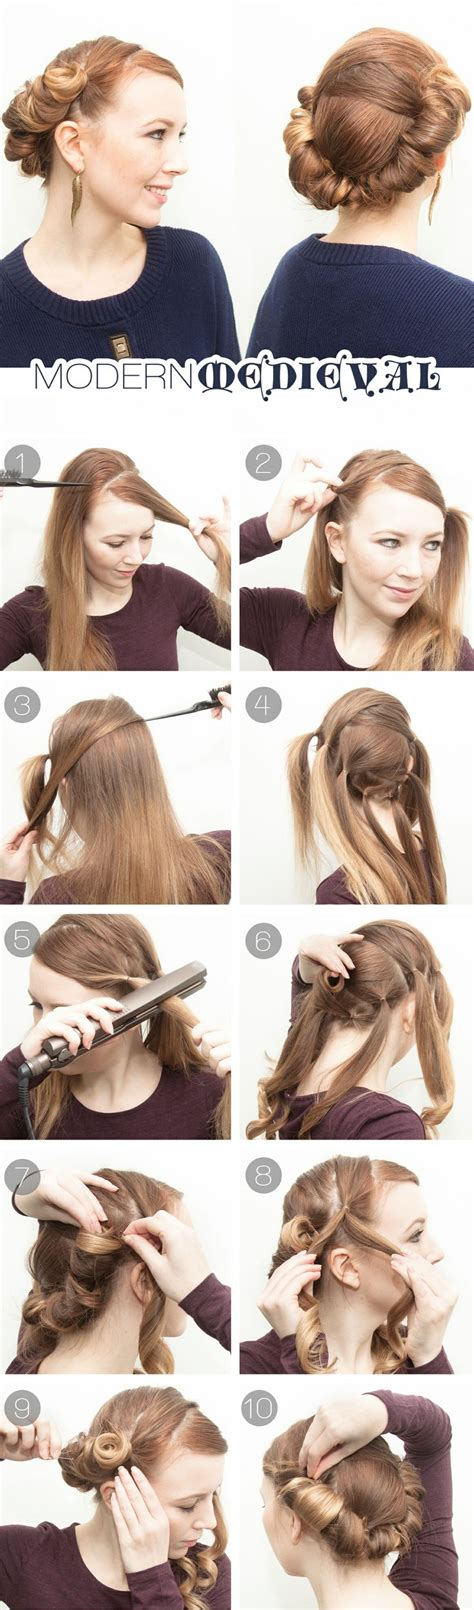 hairstyle ideas with a straightener 9 genius hairstyles you can do with a flat iron